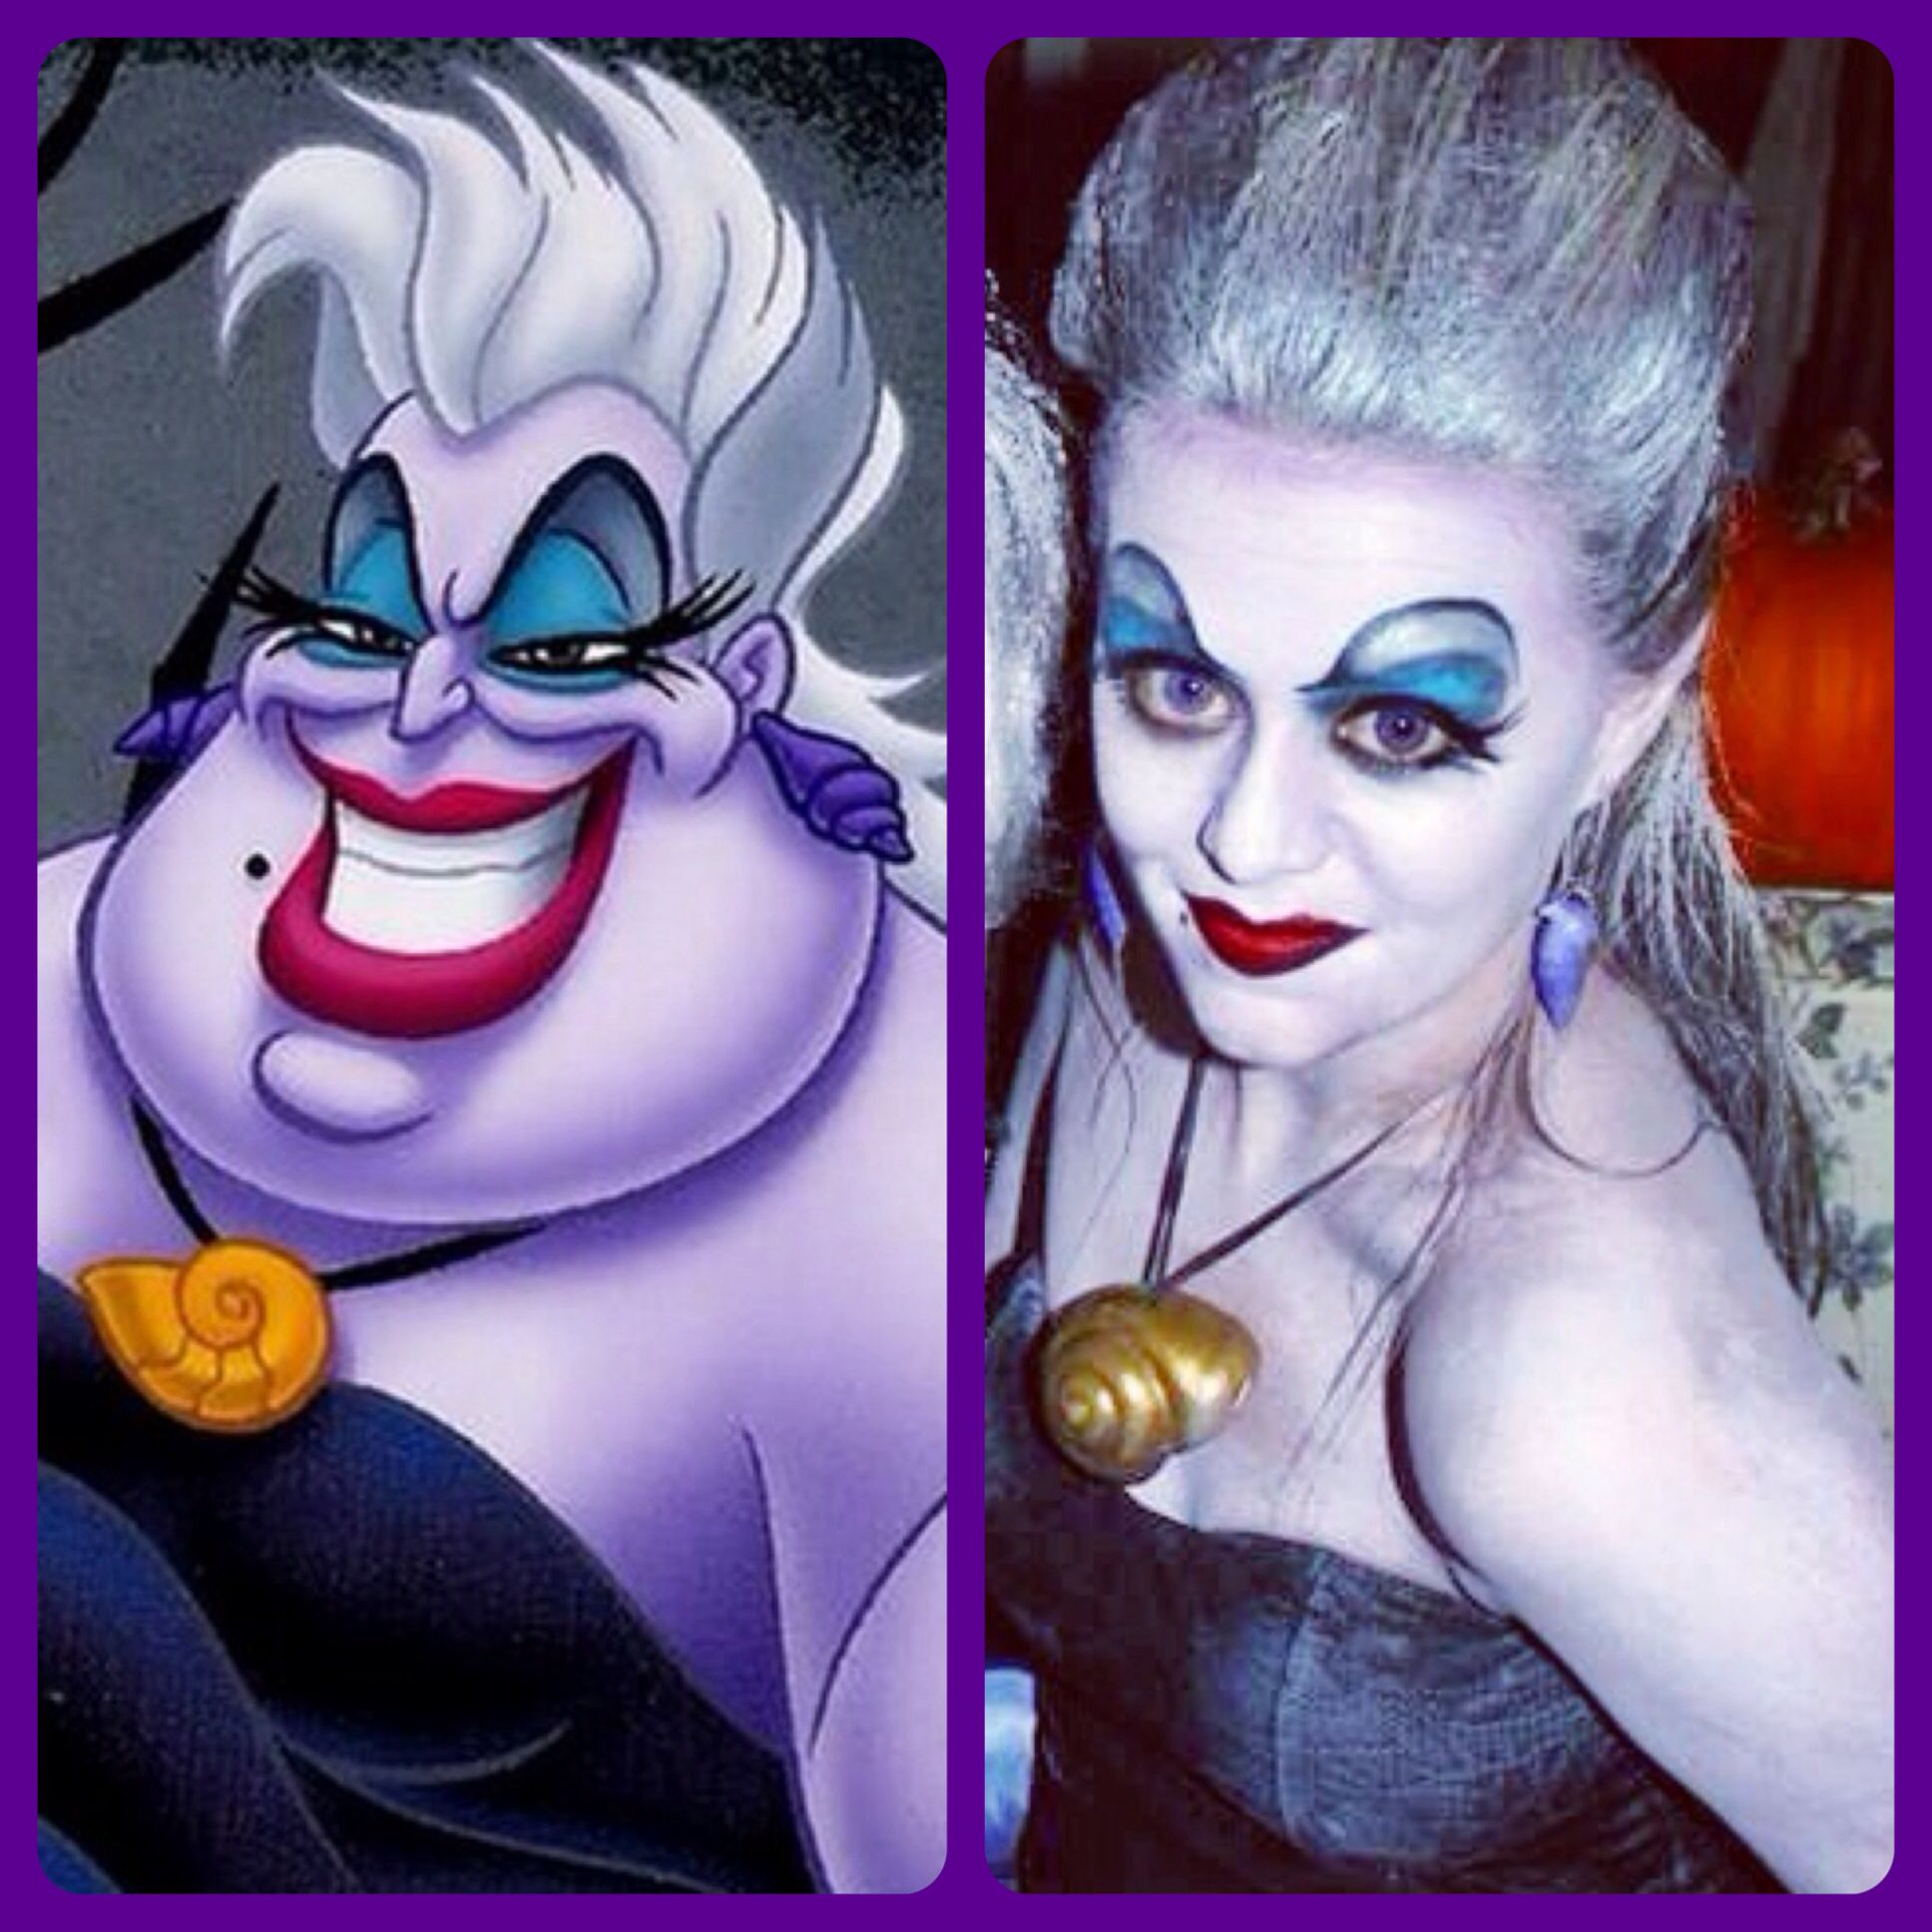 The Little Mermaid - Ursula Halloween Makeup Costume | Costume ...